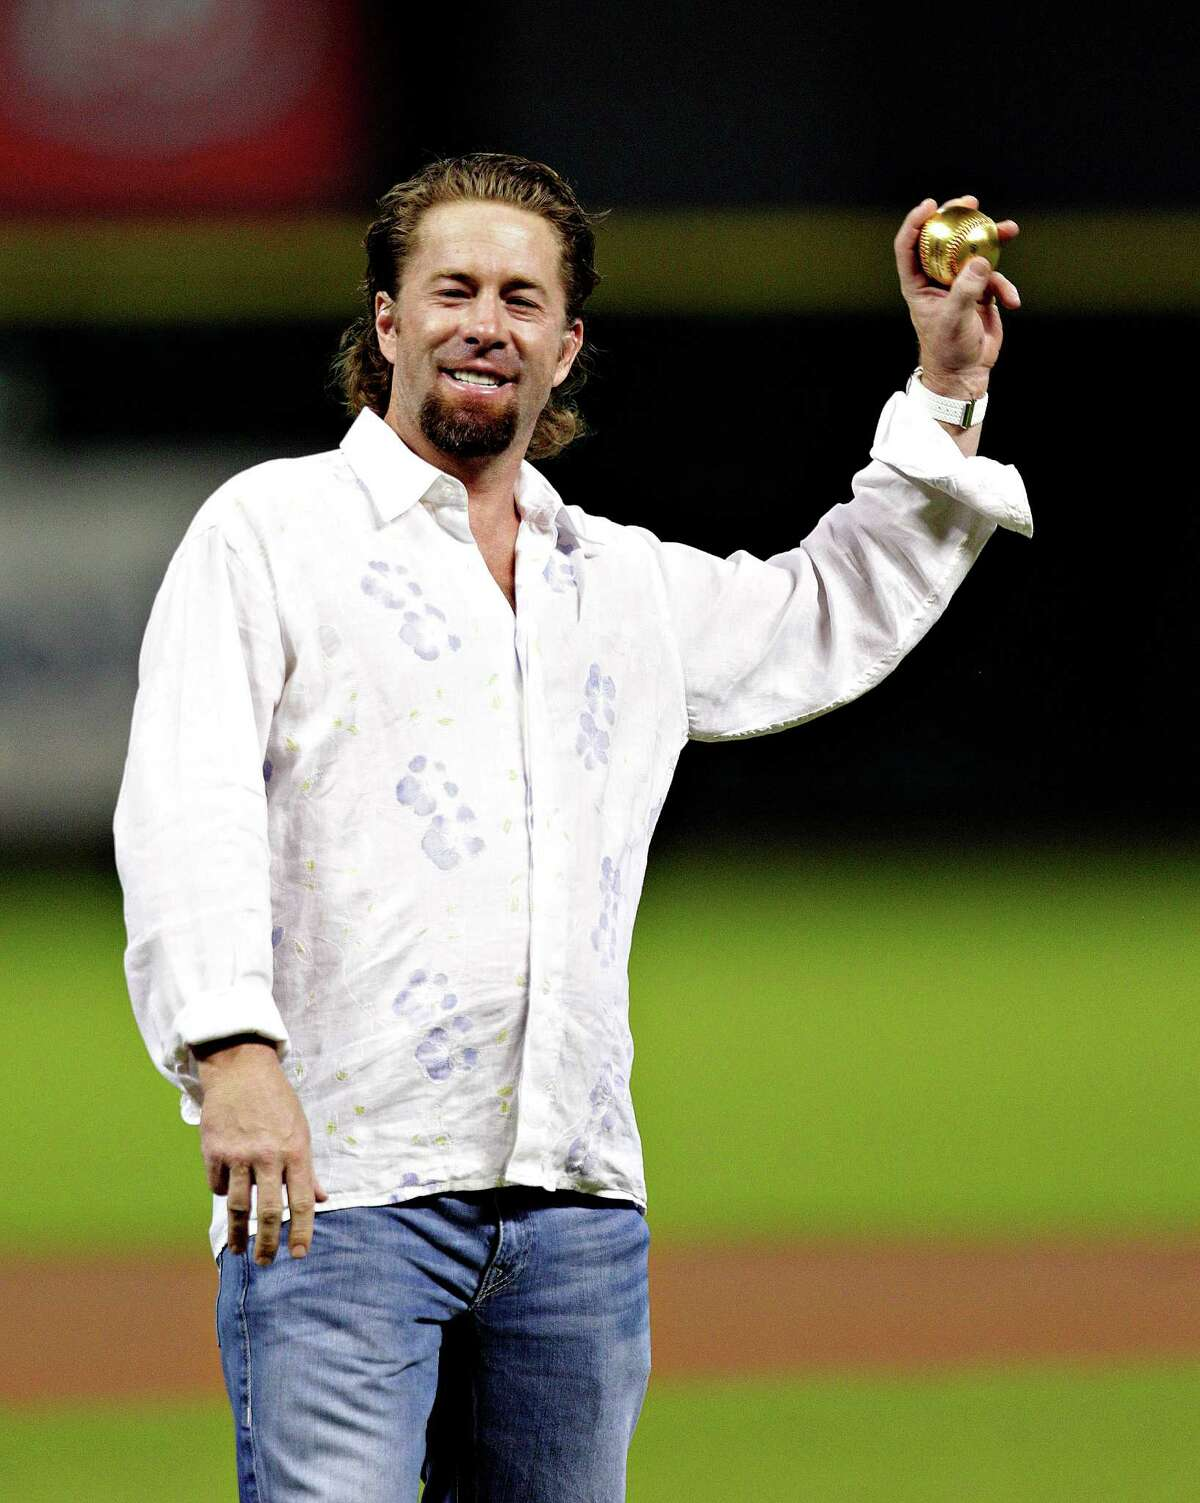 Jeff Bagwell throws out the first pitch lefthanded on Aug. 10, 2012, a concession to the right shoulder injury that ended his career.